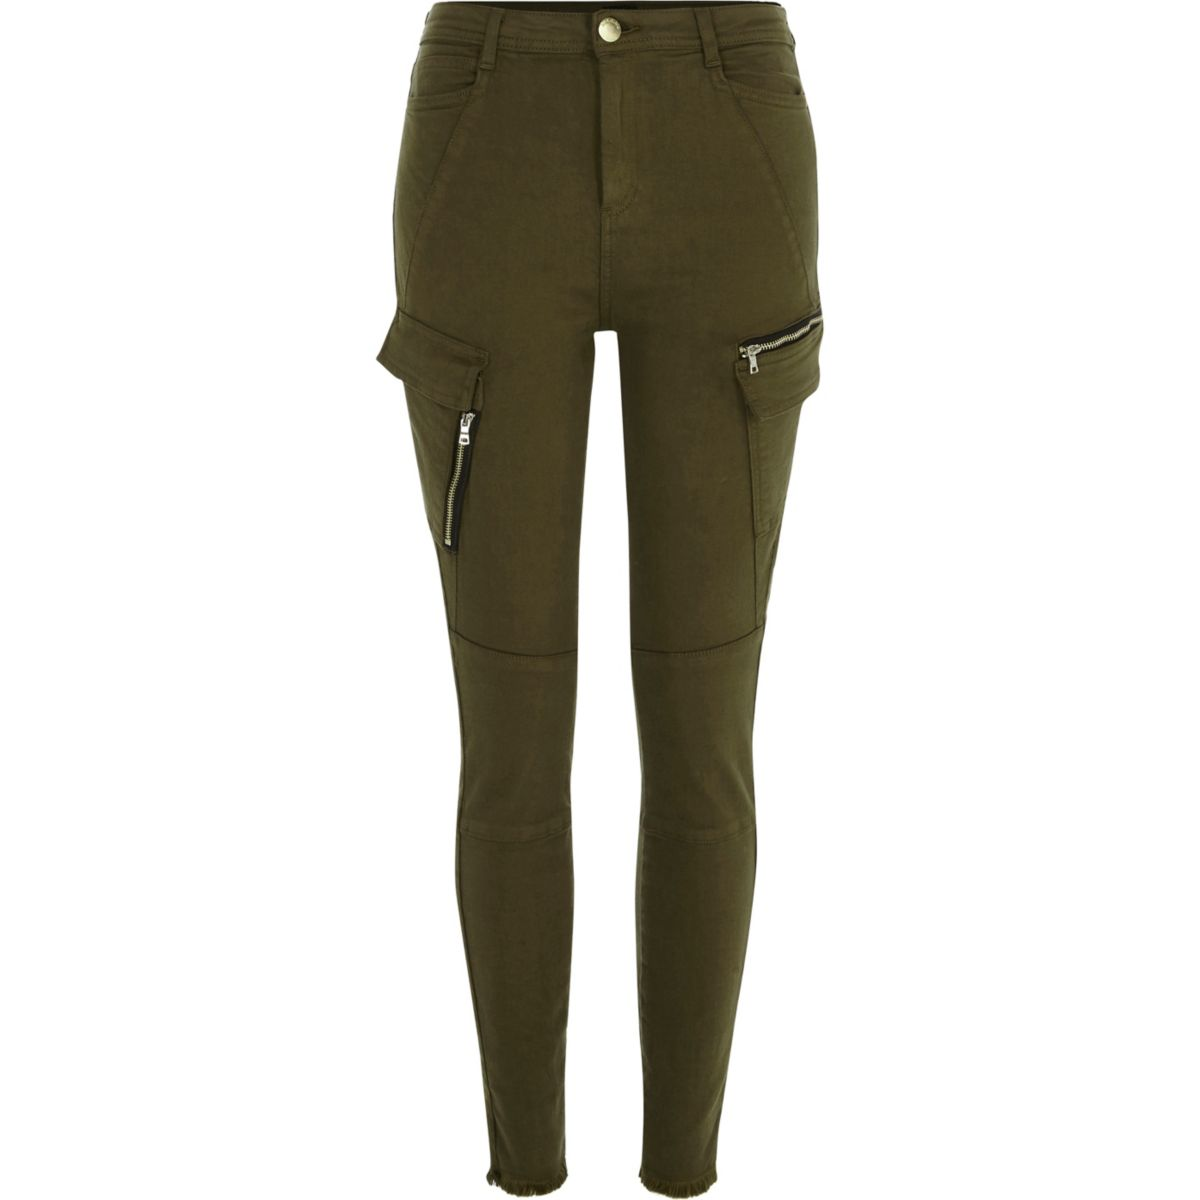 Helikon Tex CPU Combat trousers – Khaki. Helikon CPU Combat trousers Black CPU® (Combat Patrol Uniform®) pants were designed according to the latest construction of Polish Armed Forces uniform Pattern Made with body ergonomics and utility in mind, CPU® pants provide freedom of movement combined with high-capacity storage areas for necessary equipment.